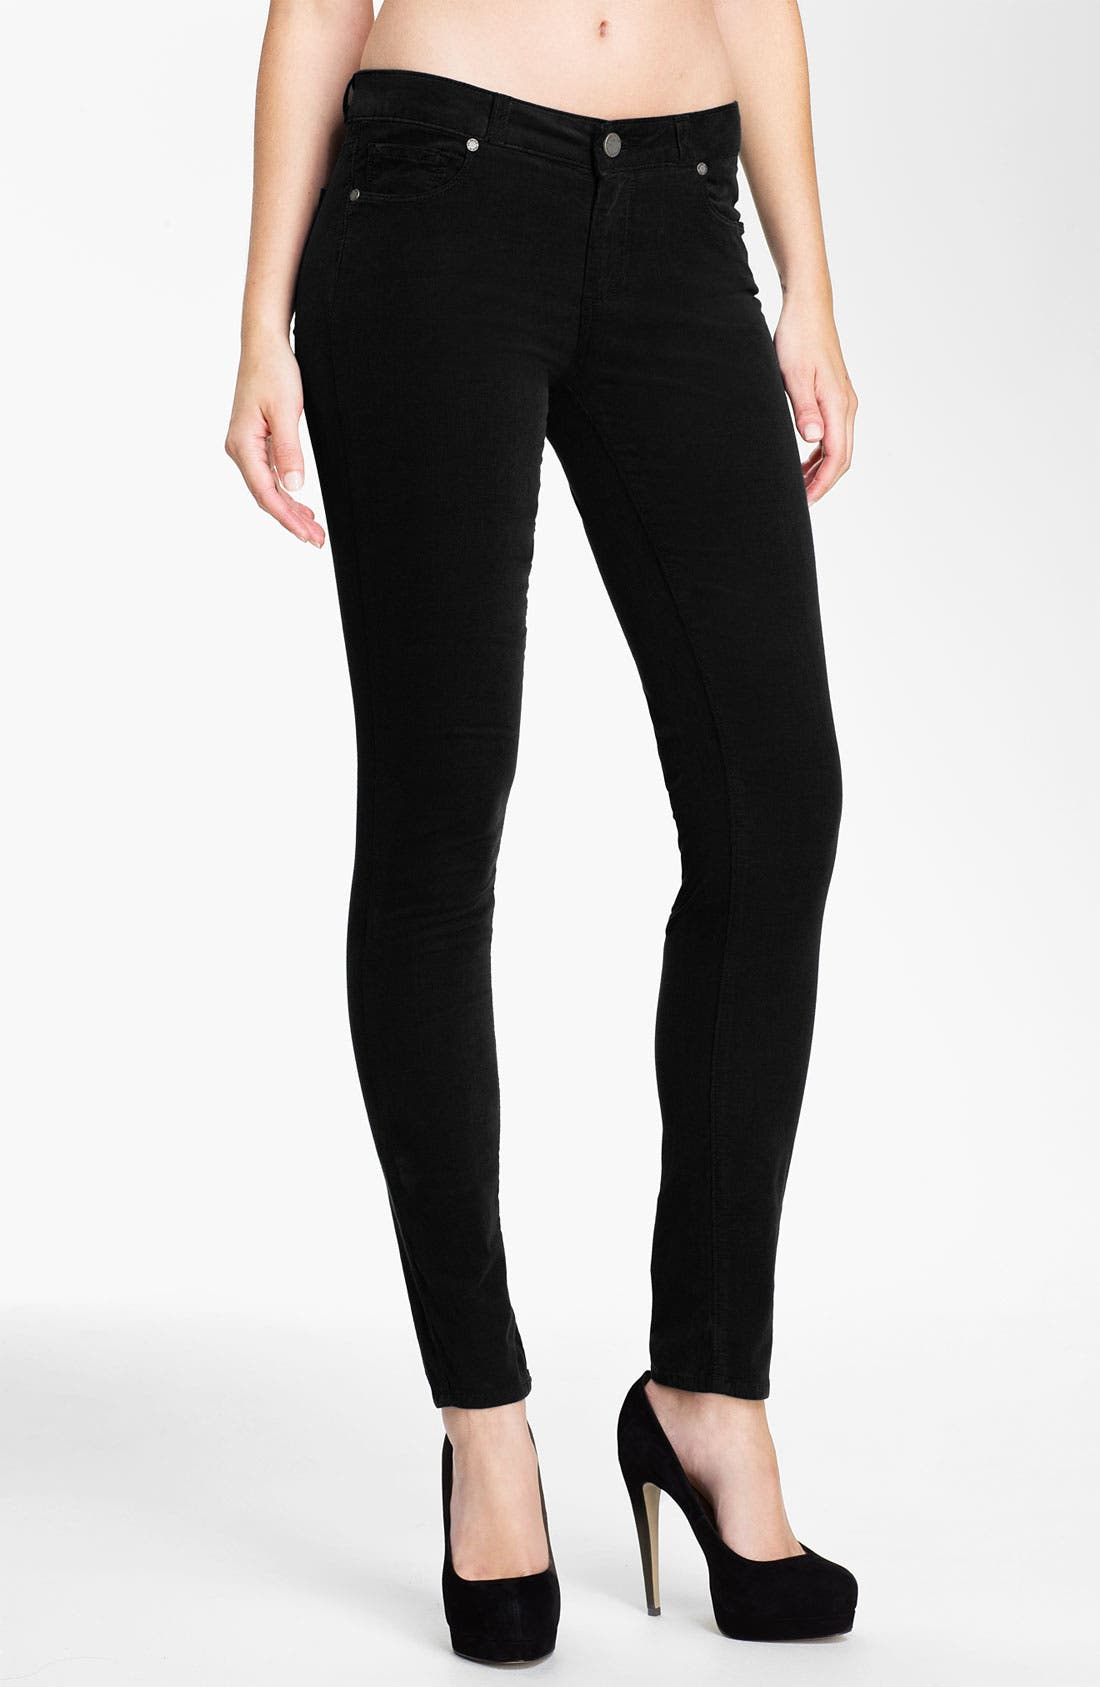 Alternate Image 1 Selected - Paige Denim 'Verdugo' Stretch Denim Skinny Jeans (Black)